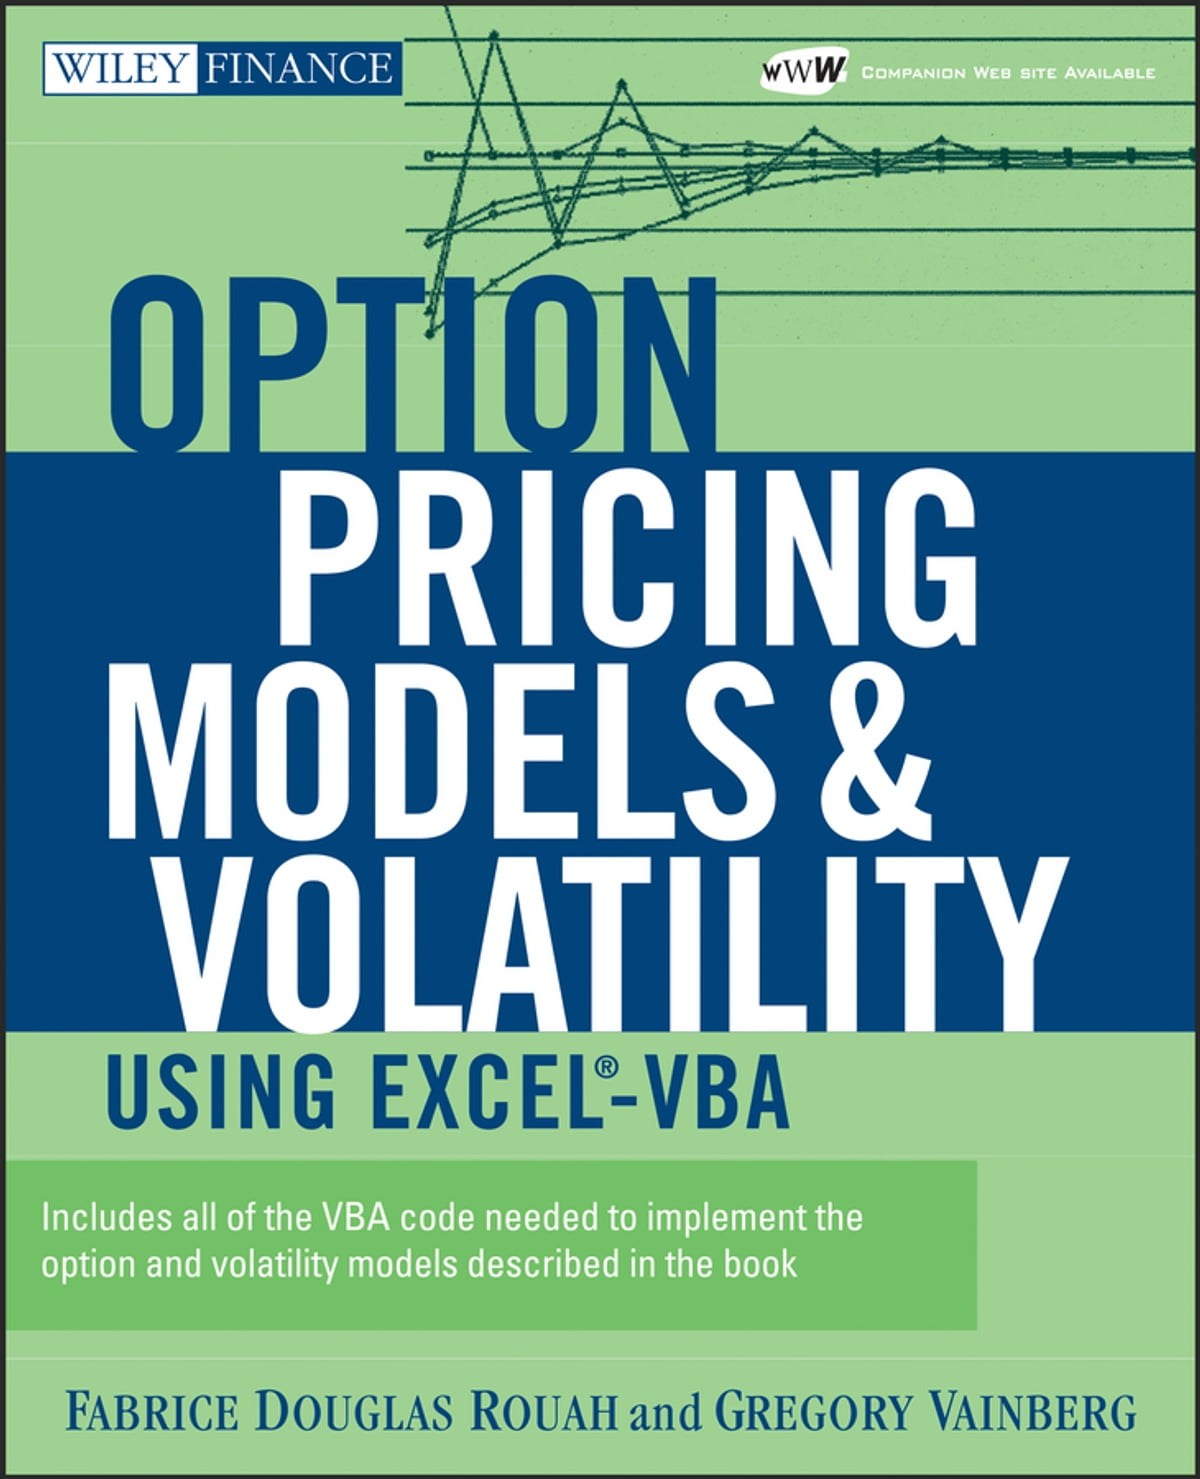 Vba Stock Simulation Option Pricing Models And Volatility Using Excel Vba Ebook By Fabrice D Rouah Rakuten Kobo